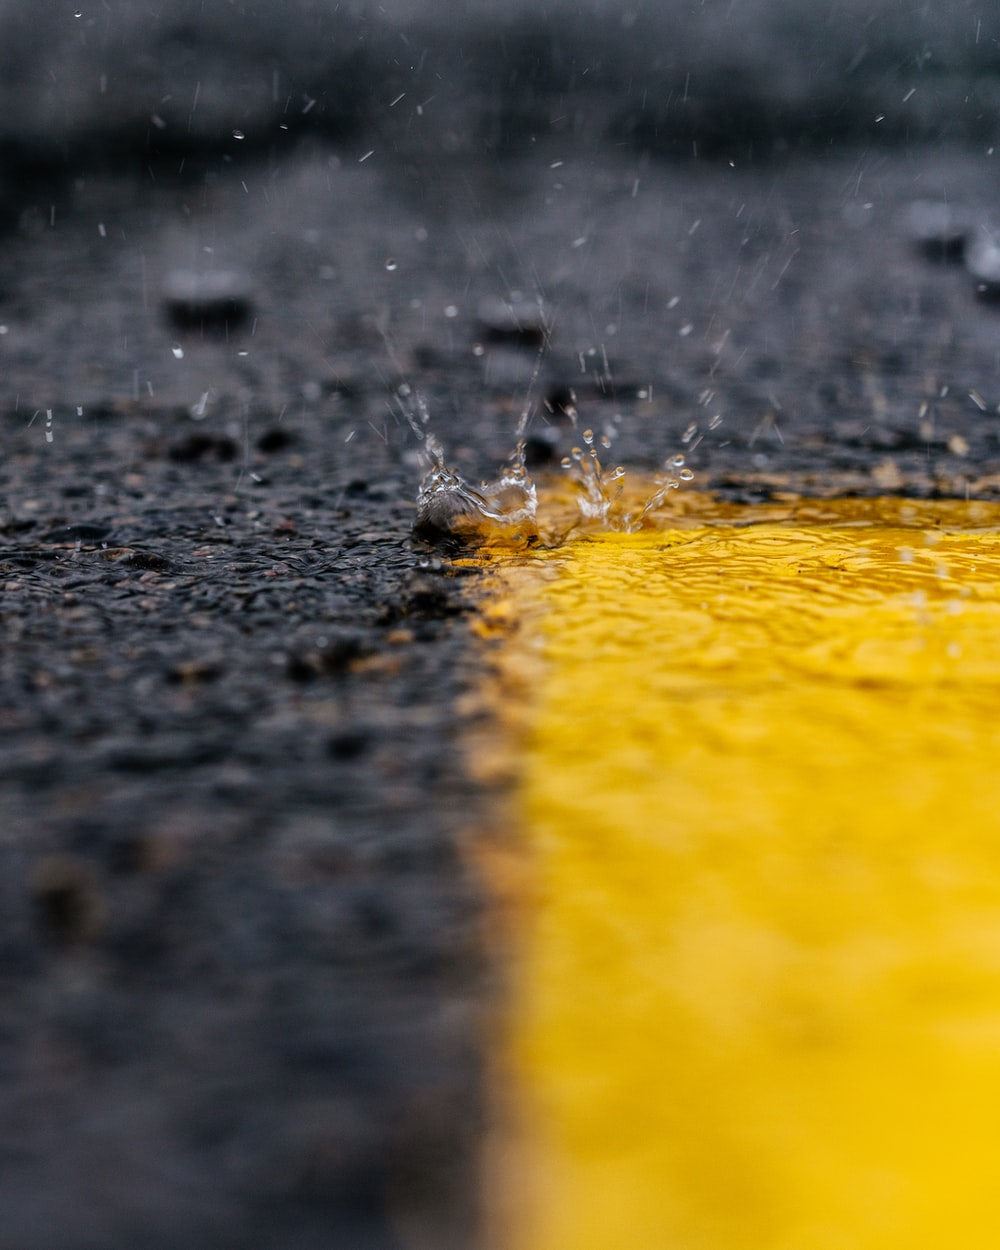 water droplets falling to yellow paint on gray surface